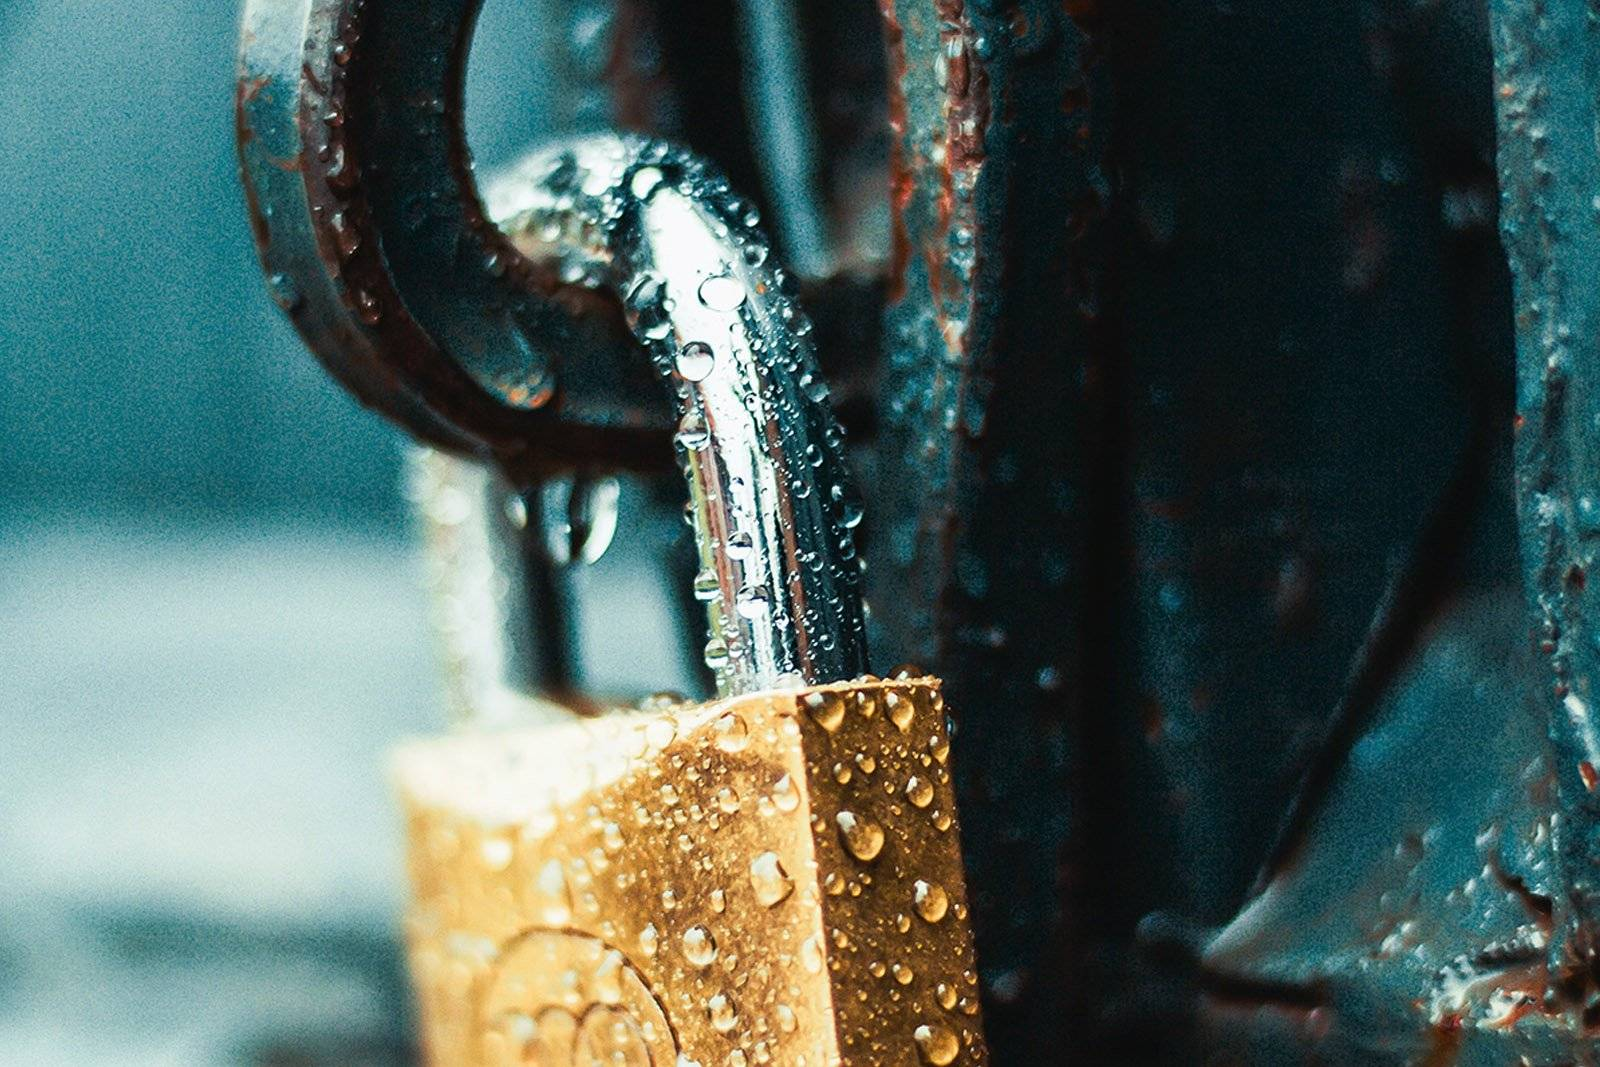 wet golden padlock attached to a rusted lock